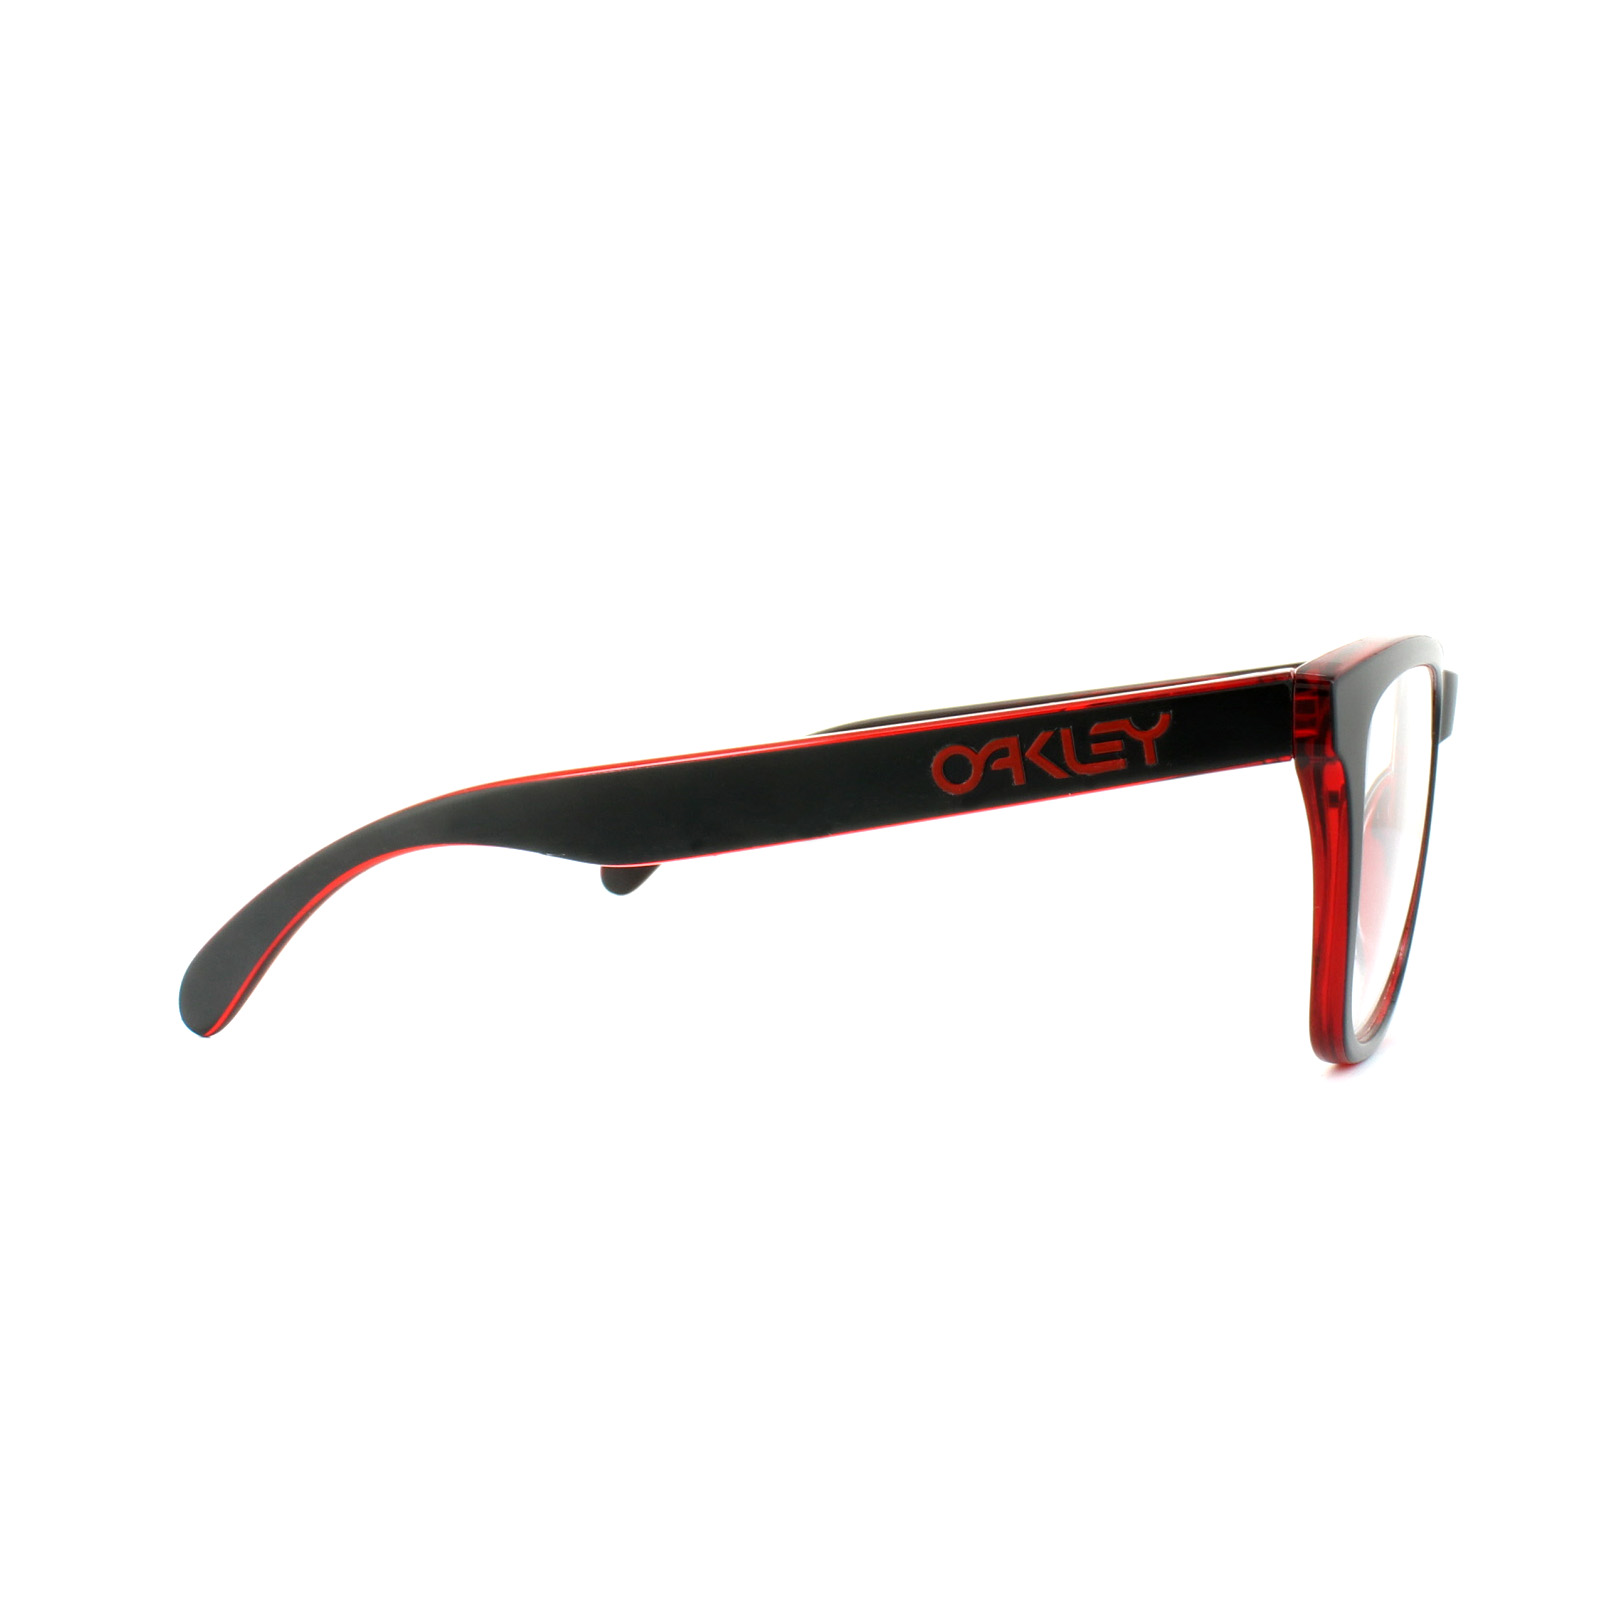 e1fb0ca744 ... ireland sentinel oakley glasses frames frogskins ox8131 01 eclipse  black red 05f99 ef587